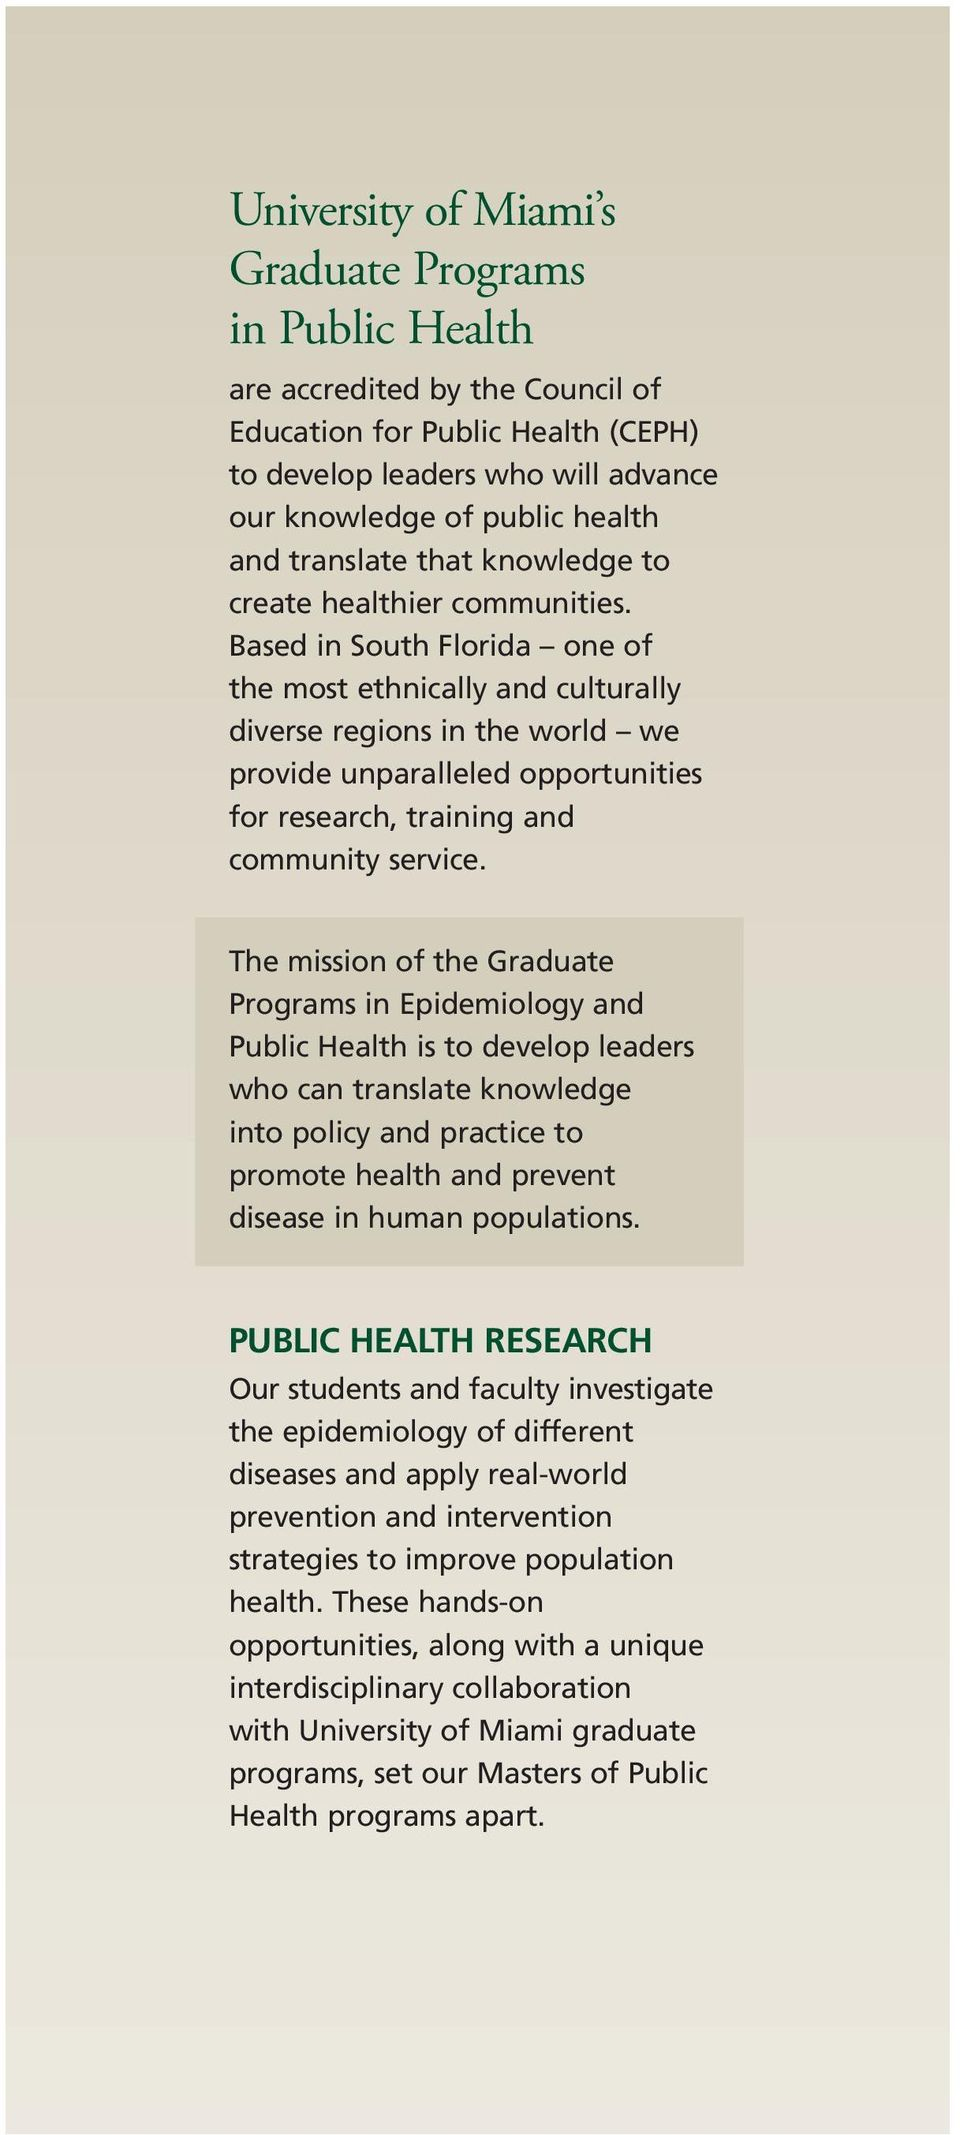 Based in South Florida one of the most ethnically and culturally diverse regions in the world we provide unparalleled opportunities for research, training and community service.